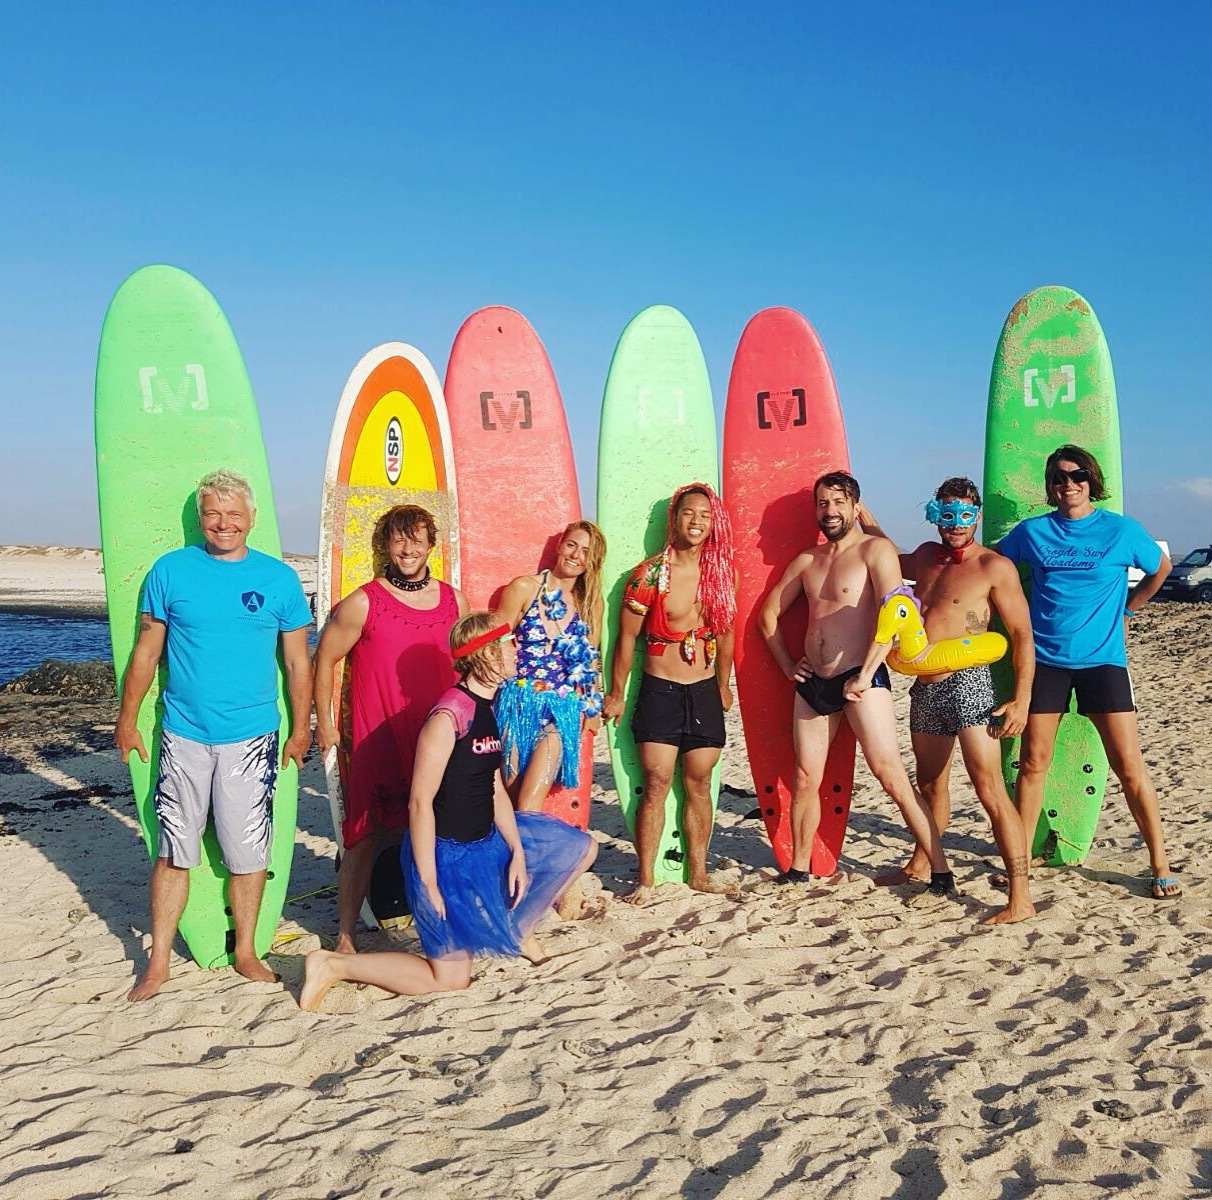 Ohana Surf and Fitness Events presents Surf and Stretch week in Fuerteventura. Join us for Surf, Fitness, Celebrity and charity events in the UK and Canary Islands, with celebrity fitness trainer and pro surfer Tehillah McGuinness. With locations and accommodation in Cornwall, Fuerteventura and London. Single travellers, couple, groups and families.  All levels and ages welcome.